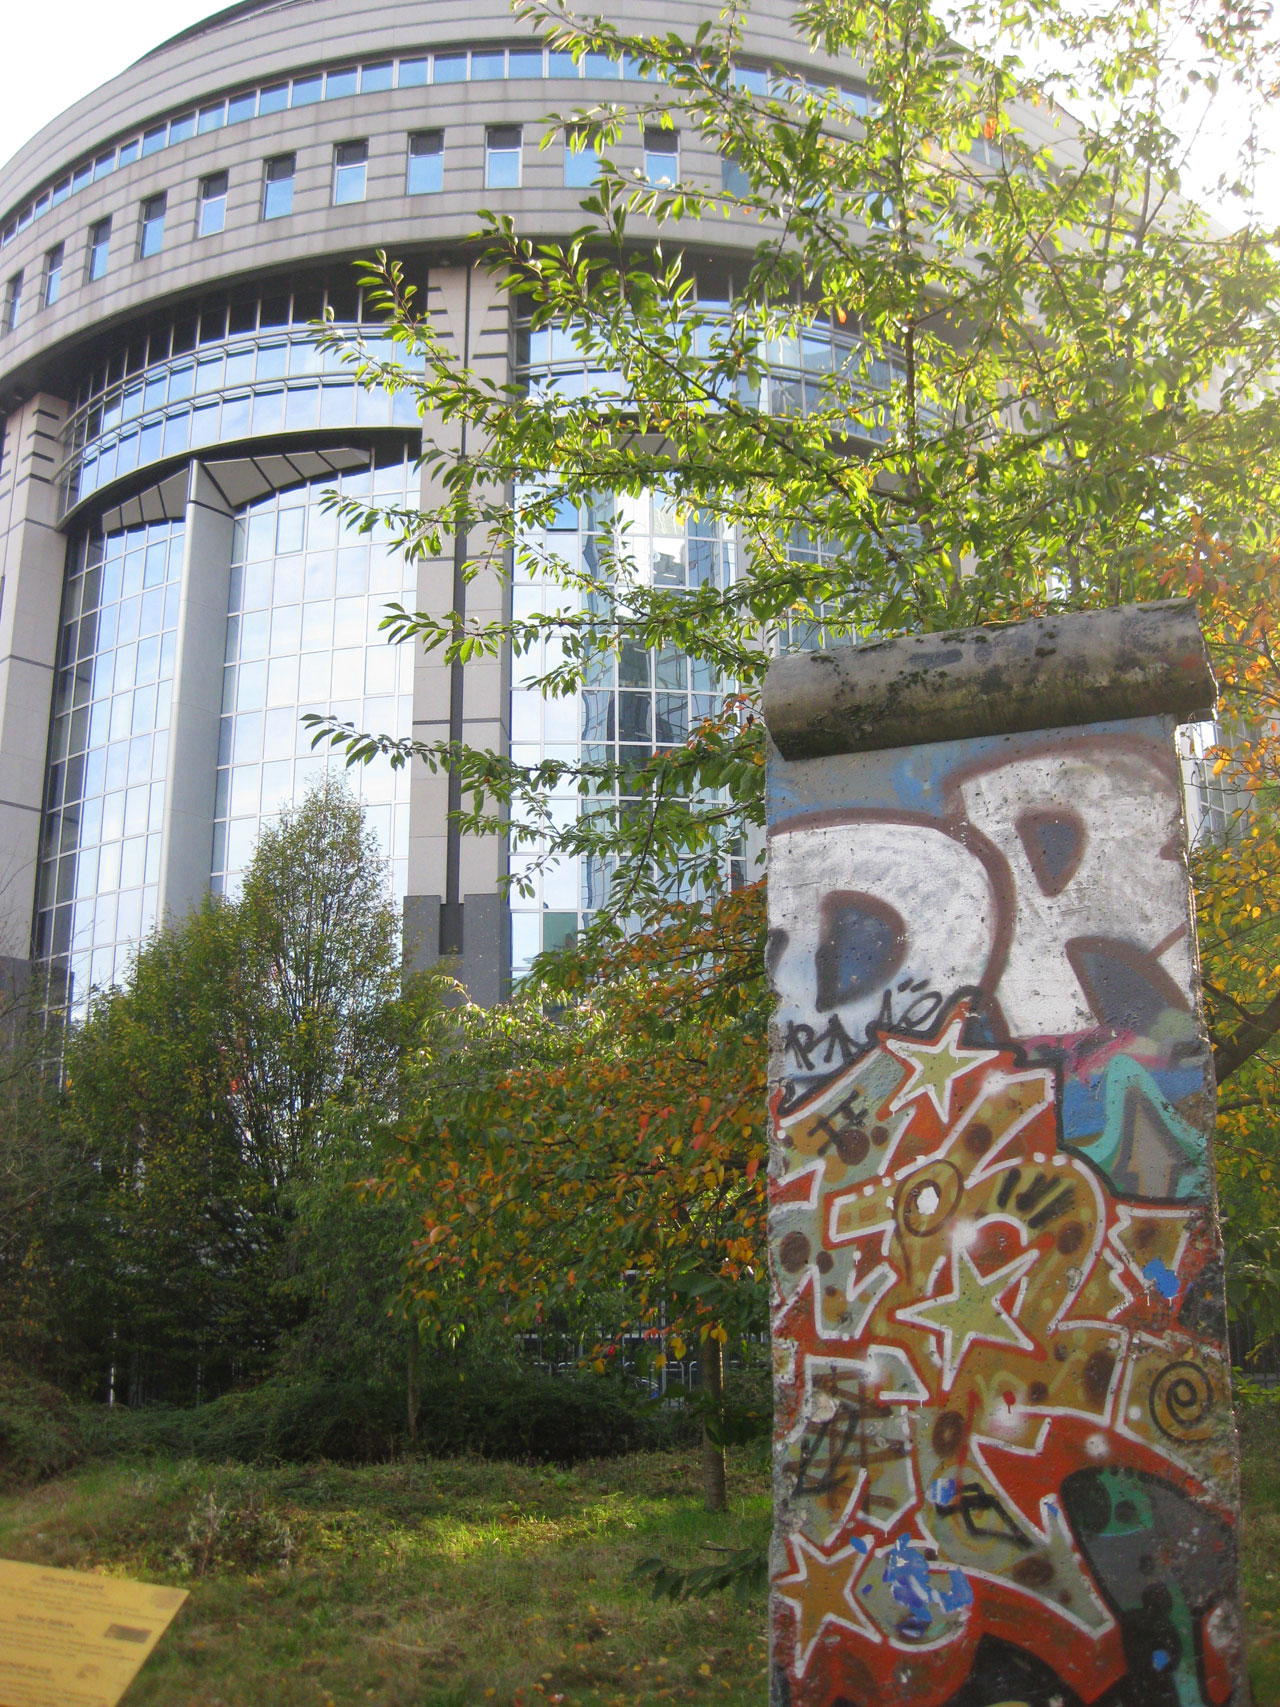 European Parliament and the Berlin Wall, Brussels, Belgium